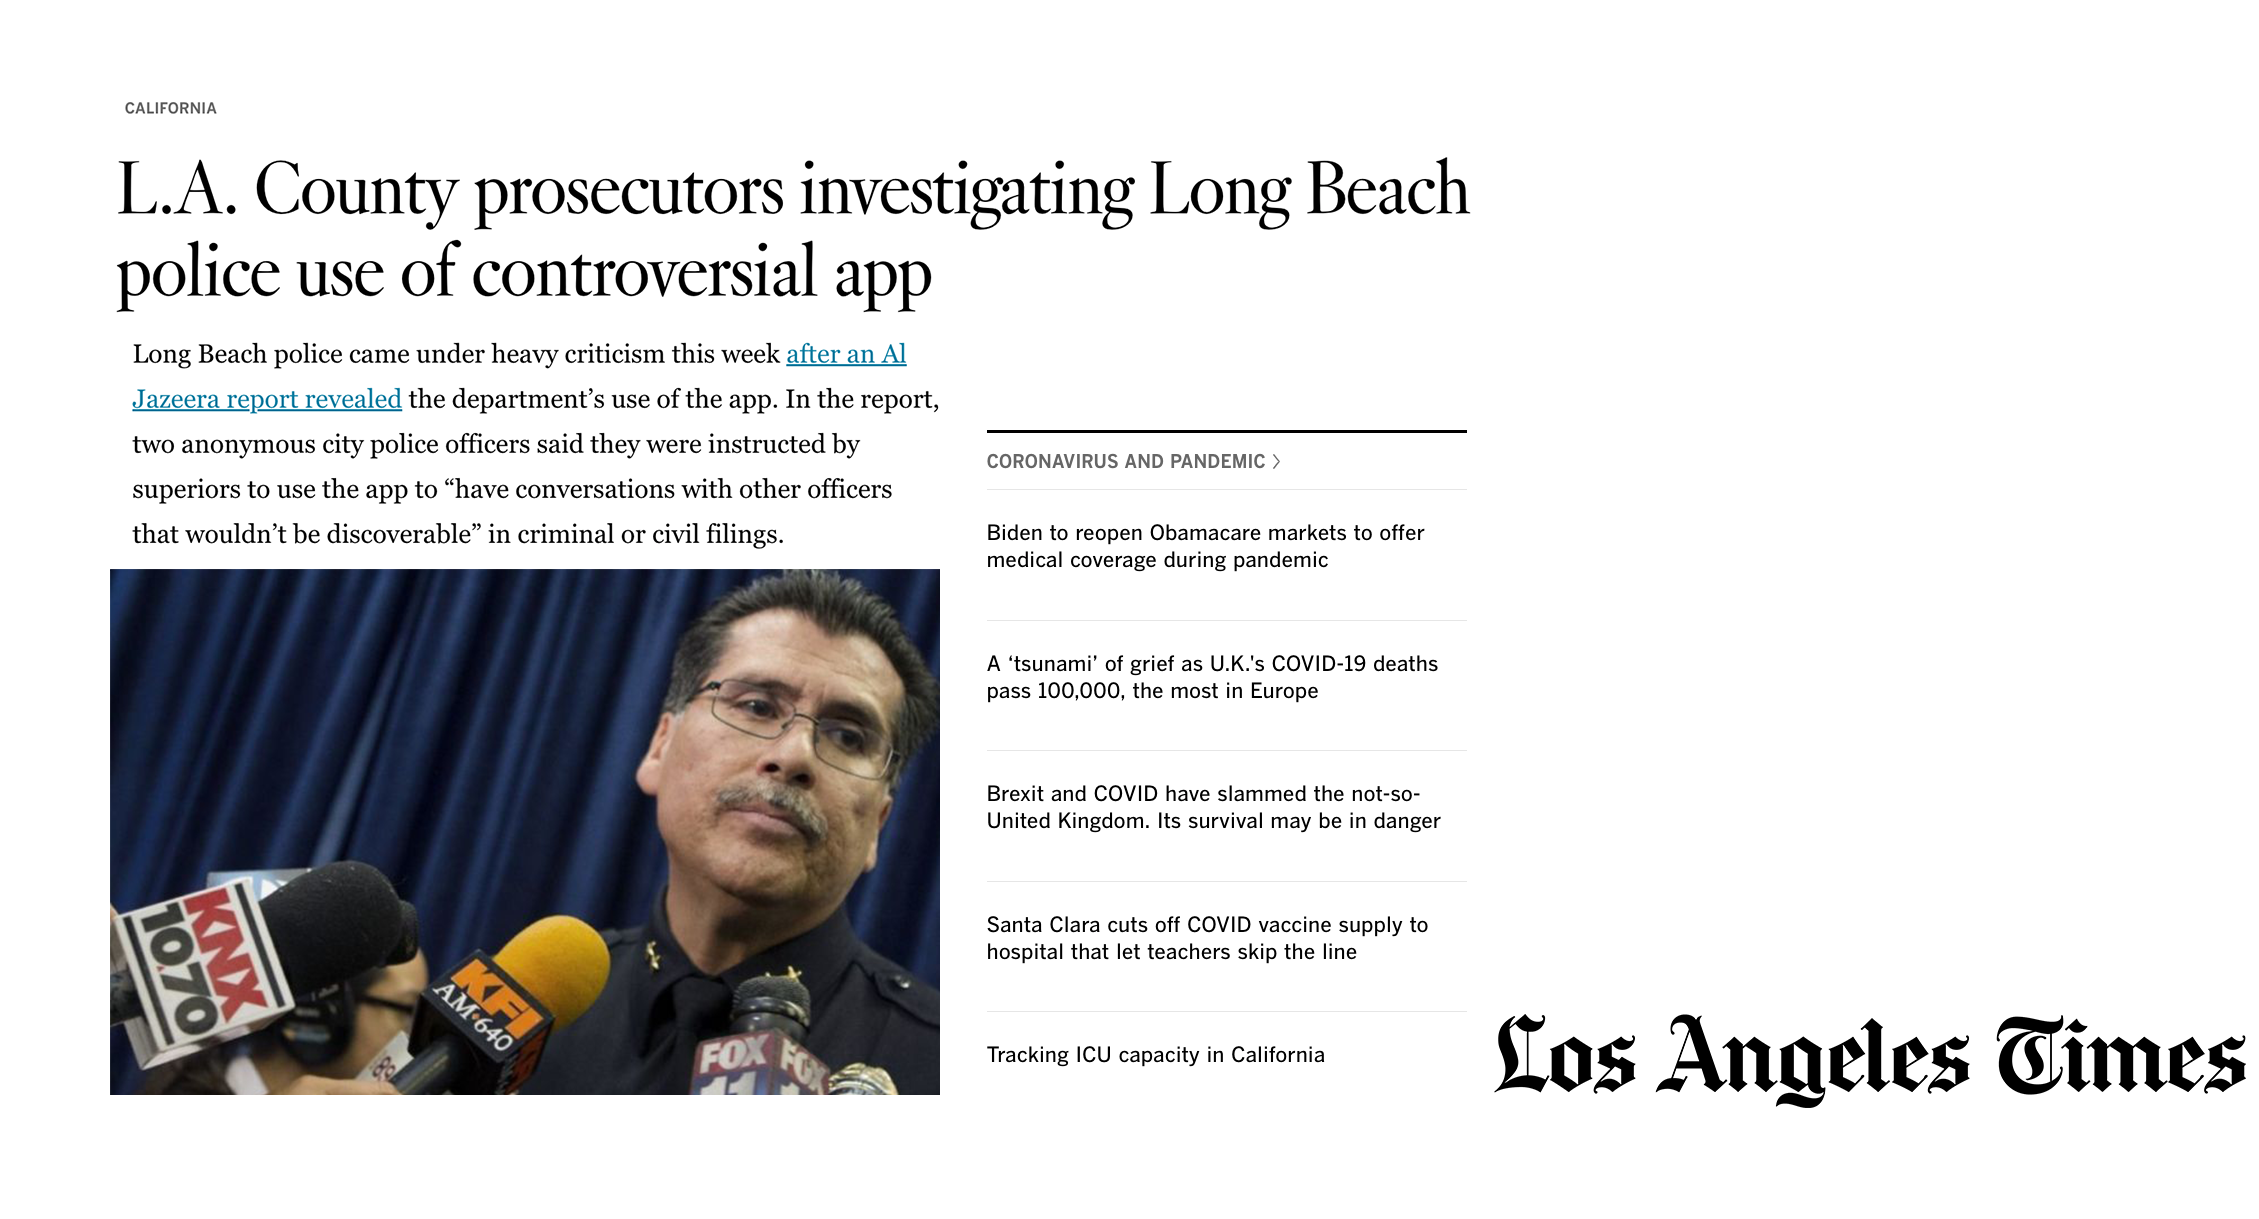 L.A. County prosecutors investigating Long Beach police use of controversial app